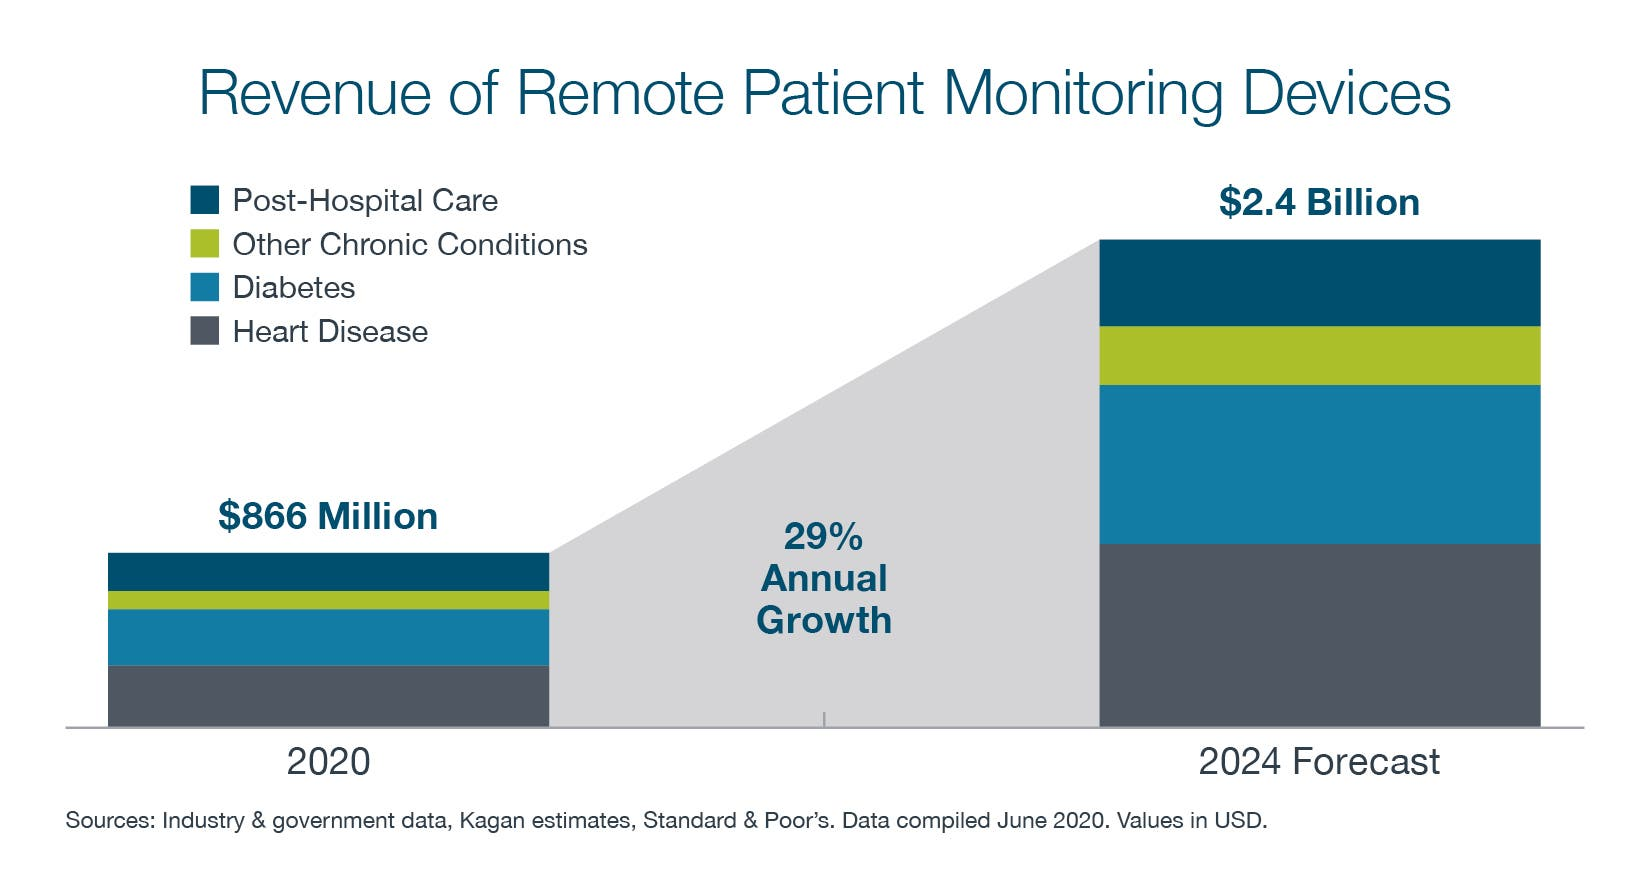 Graph showing revenue of remote patent monitoring devices 2020 was at $866 Million where the 2024 forecast predicts reaching 2.4 Billion - An annual growth rate of 29%. Colors in graph depict breakdown of sources of revenue of remote patent monitoring devices. Dark blue represents post-hospital care, green represents other chronic conditions, light blue represents diabetes, and grey represents heart disease